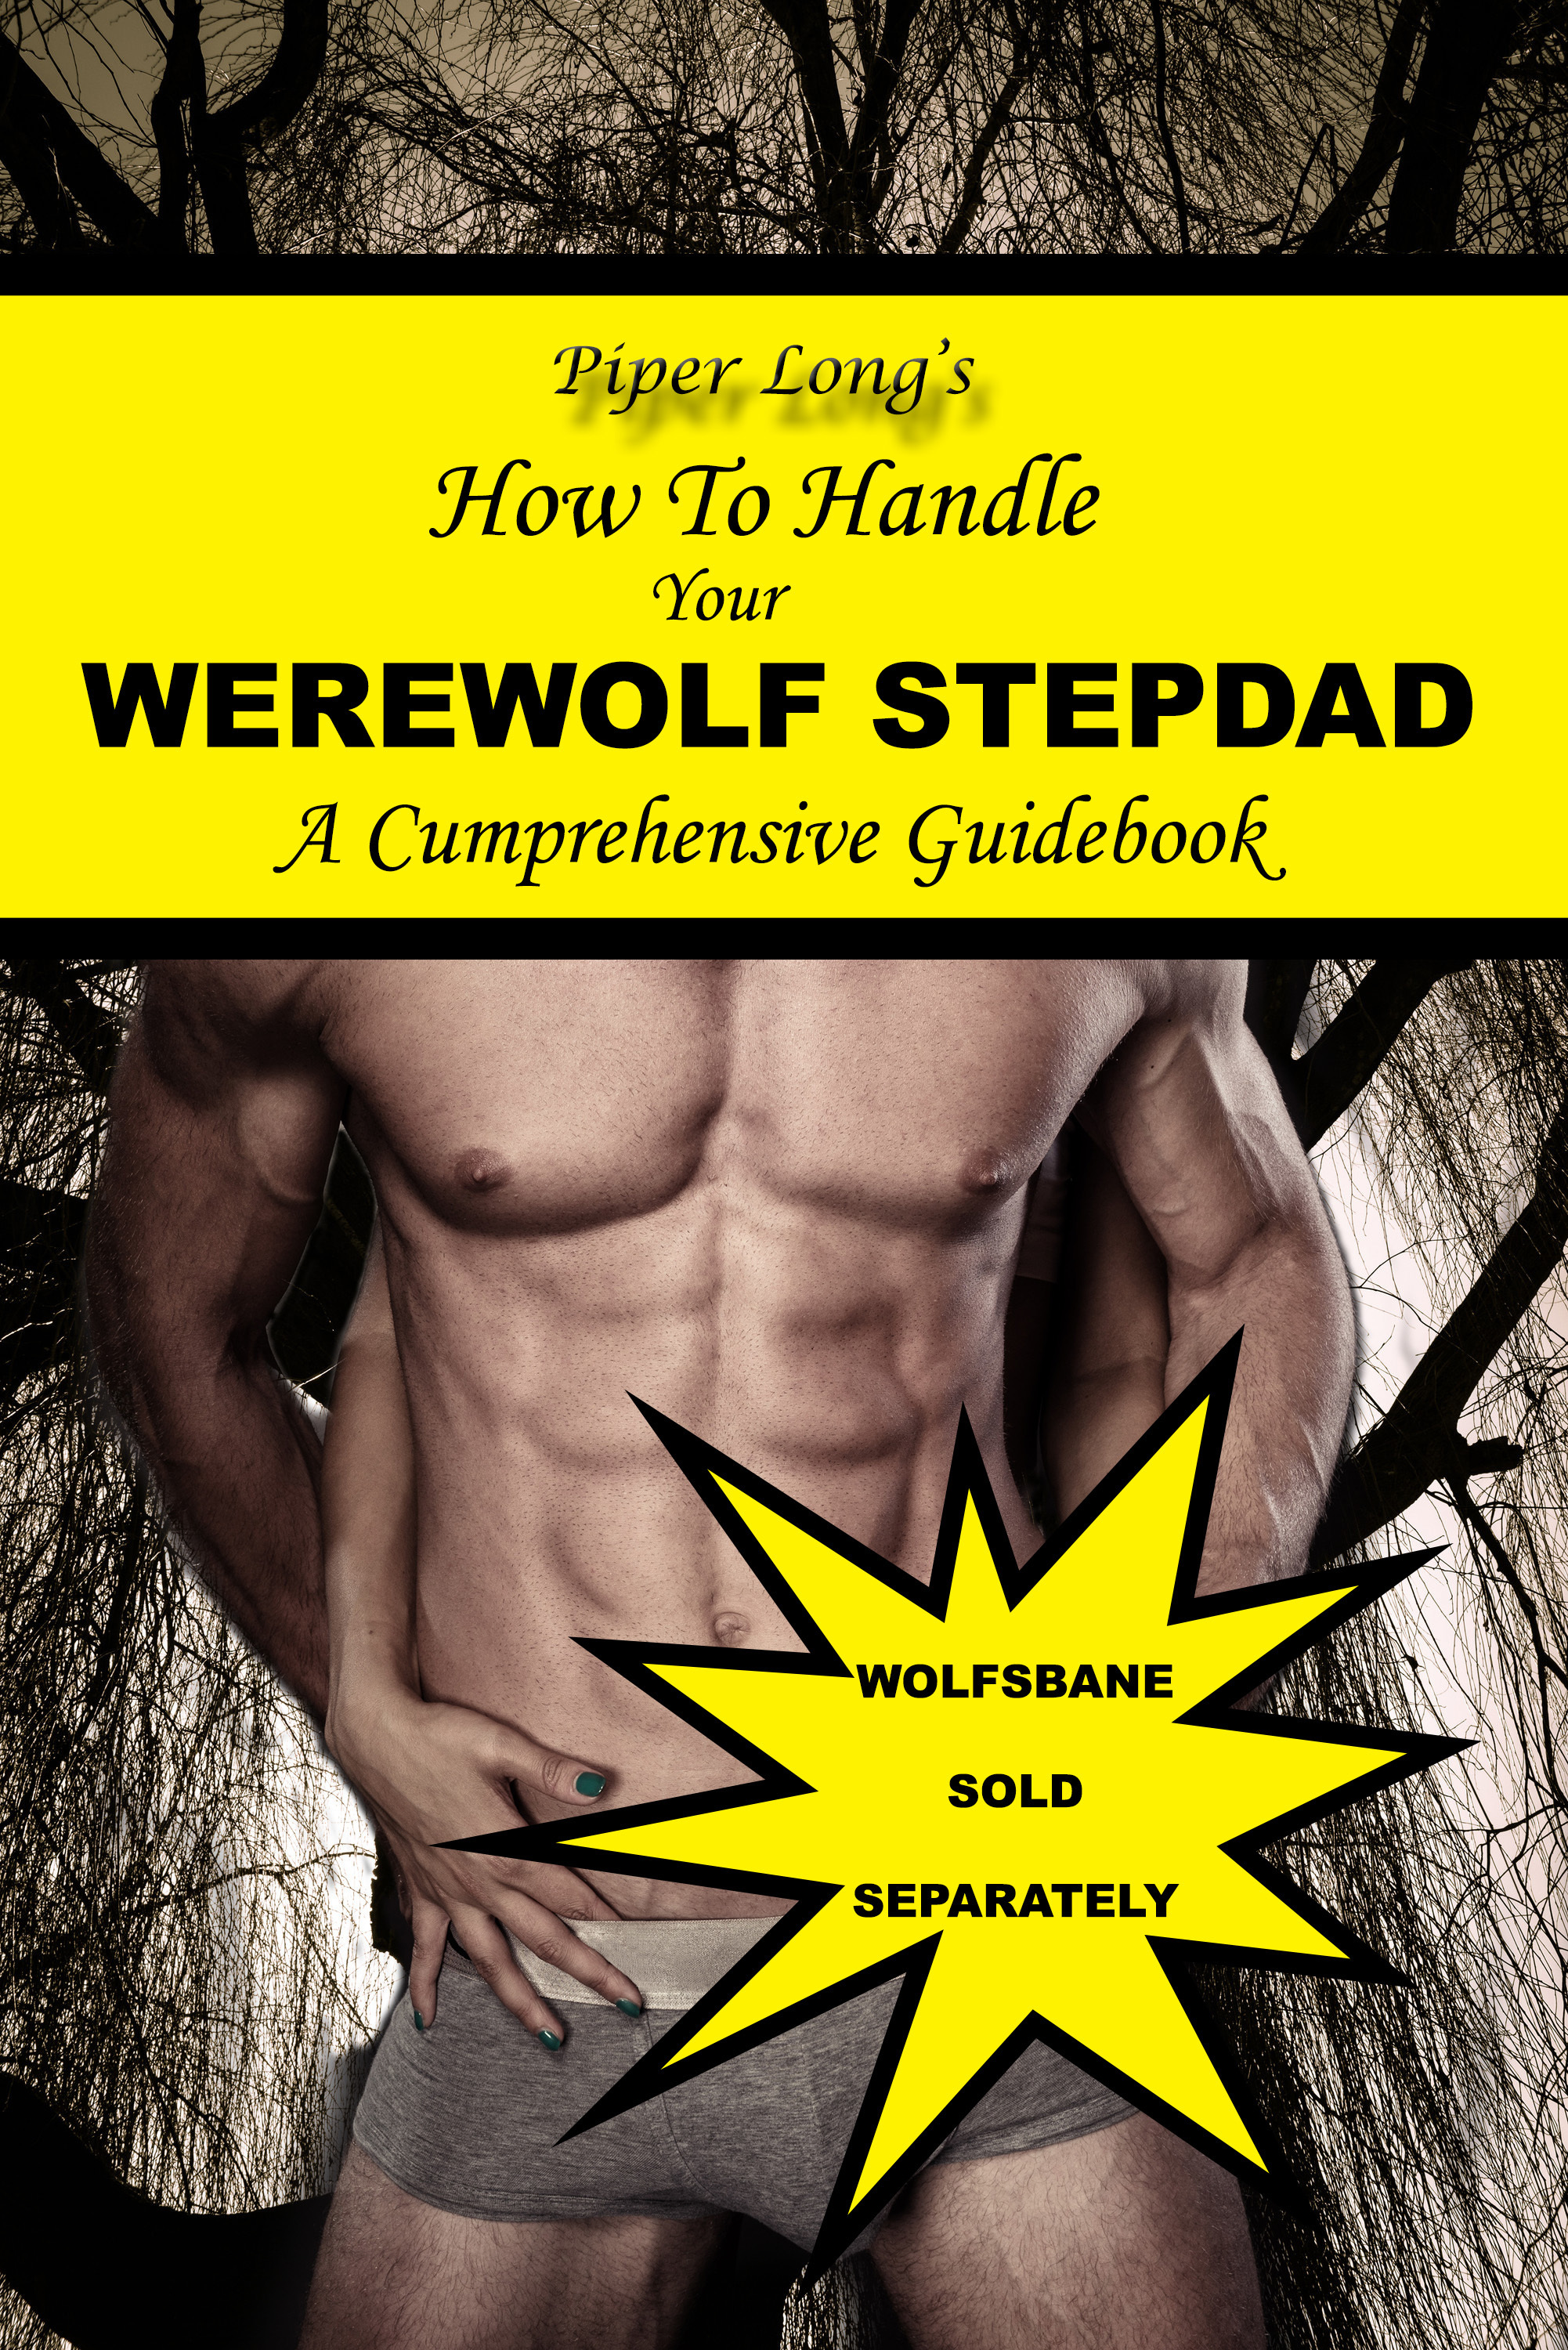 How To Handle Your Werewolf Stepdad: A Cumprehensive Guidebook Piper Long